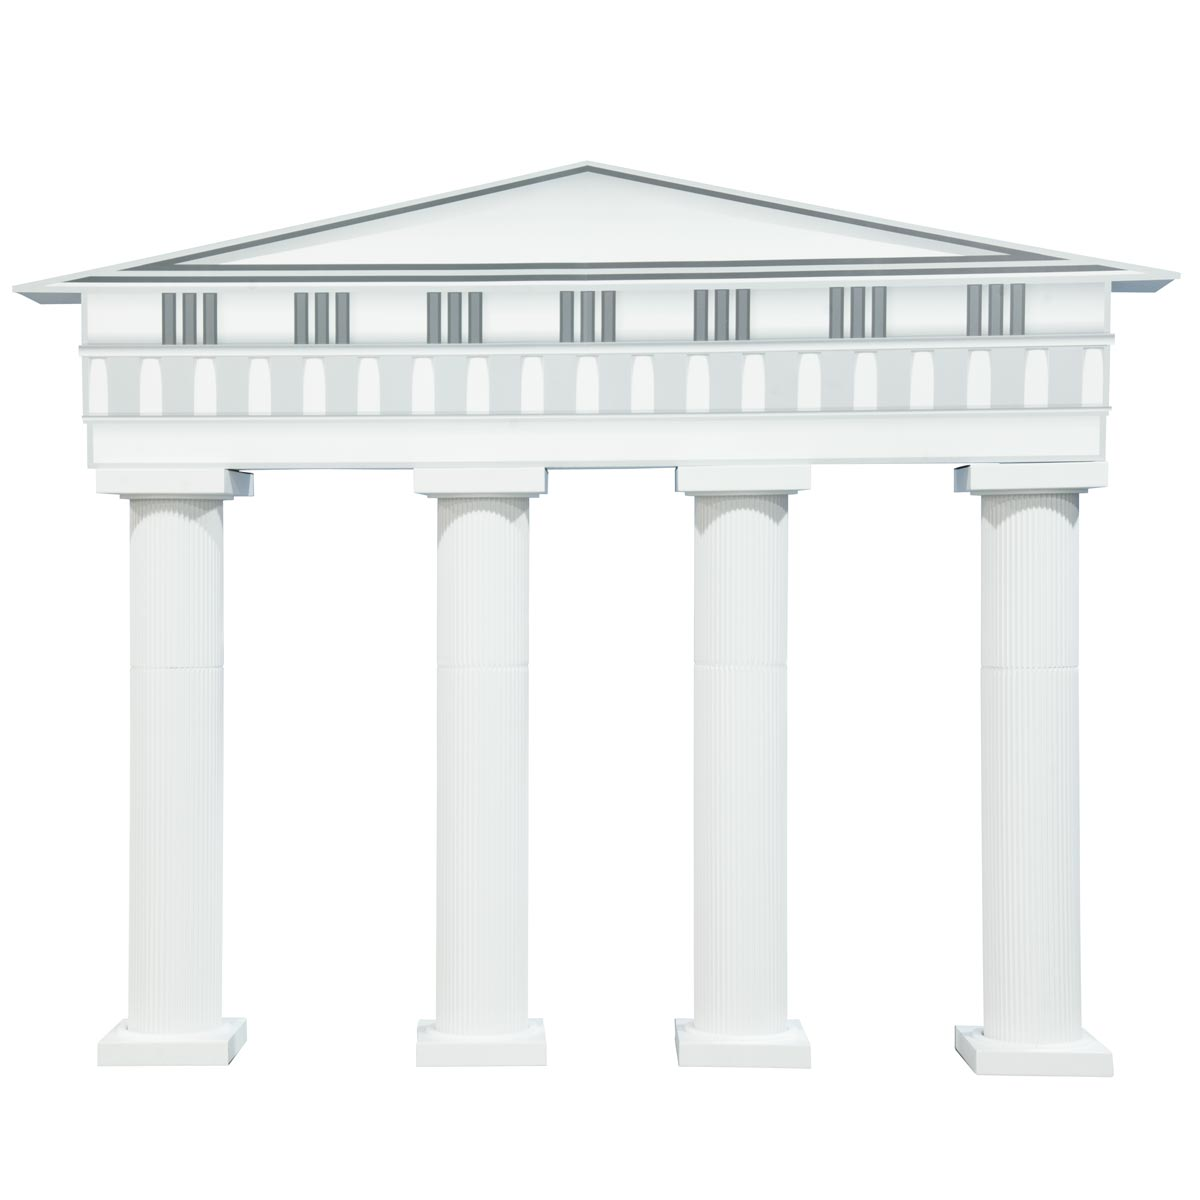 Grecian Temple of Love Arch Kit